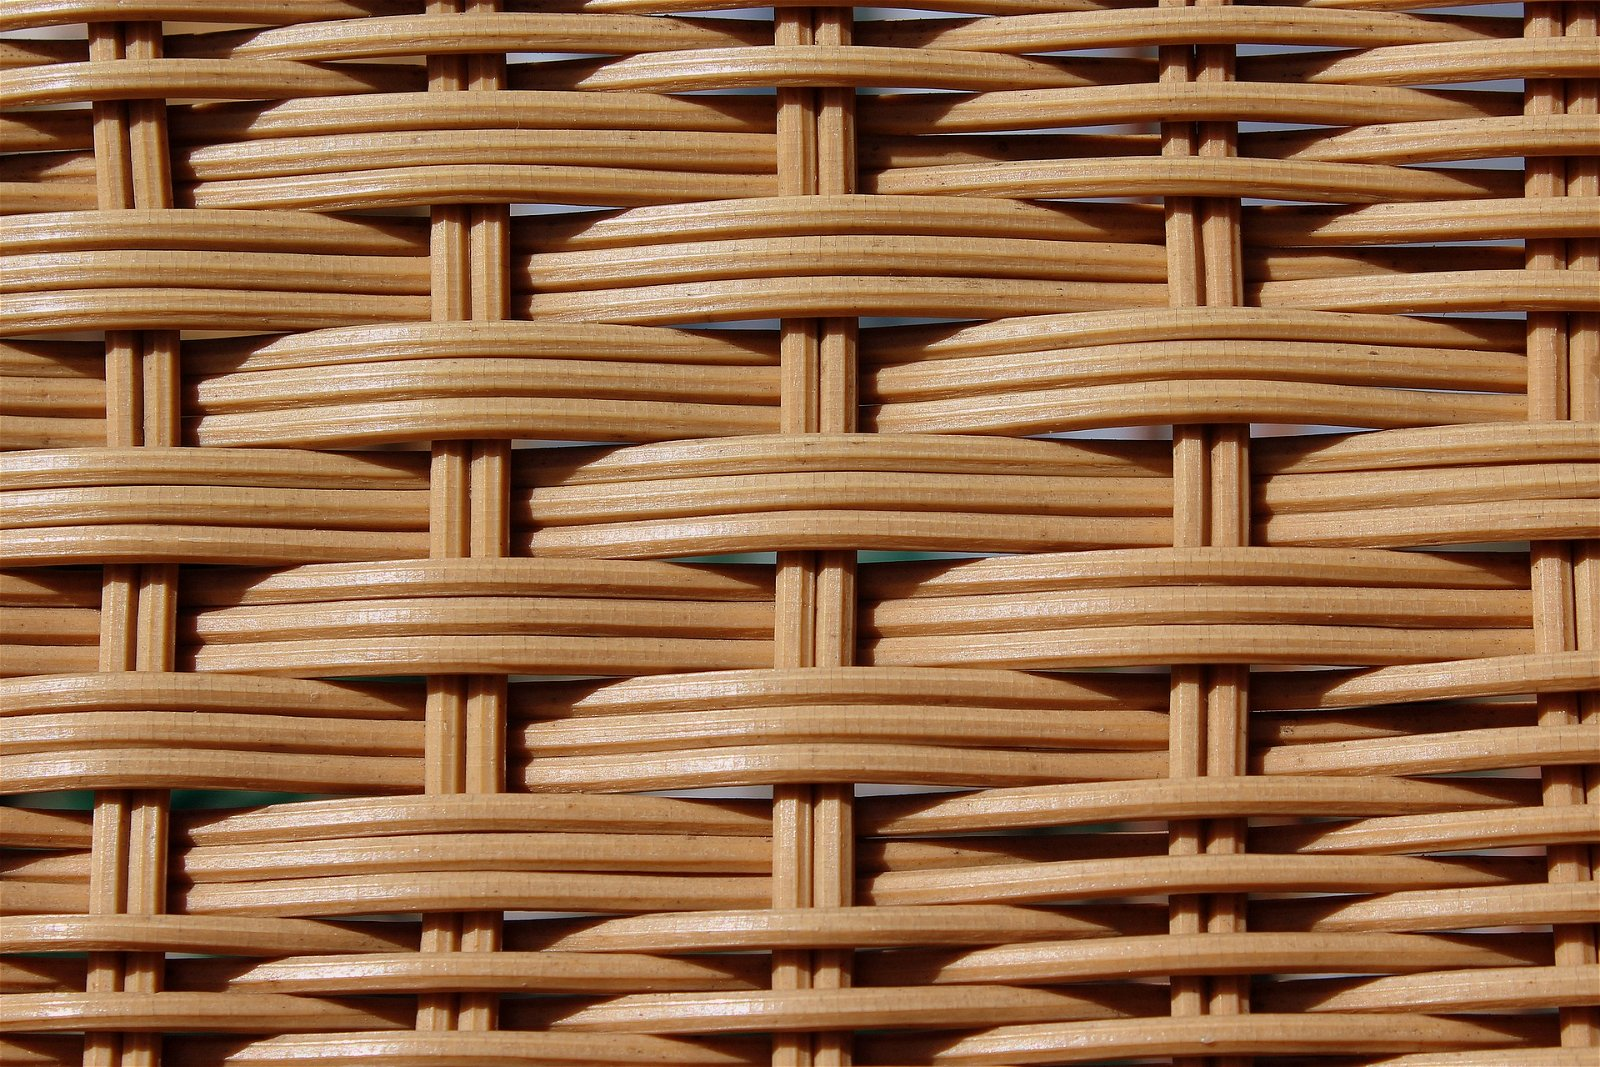 Rattan and Wicker - What is the difference